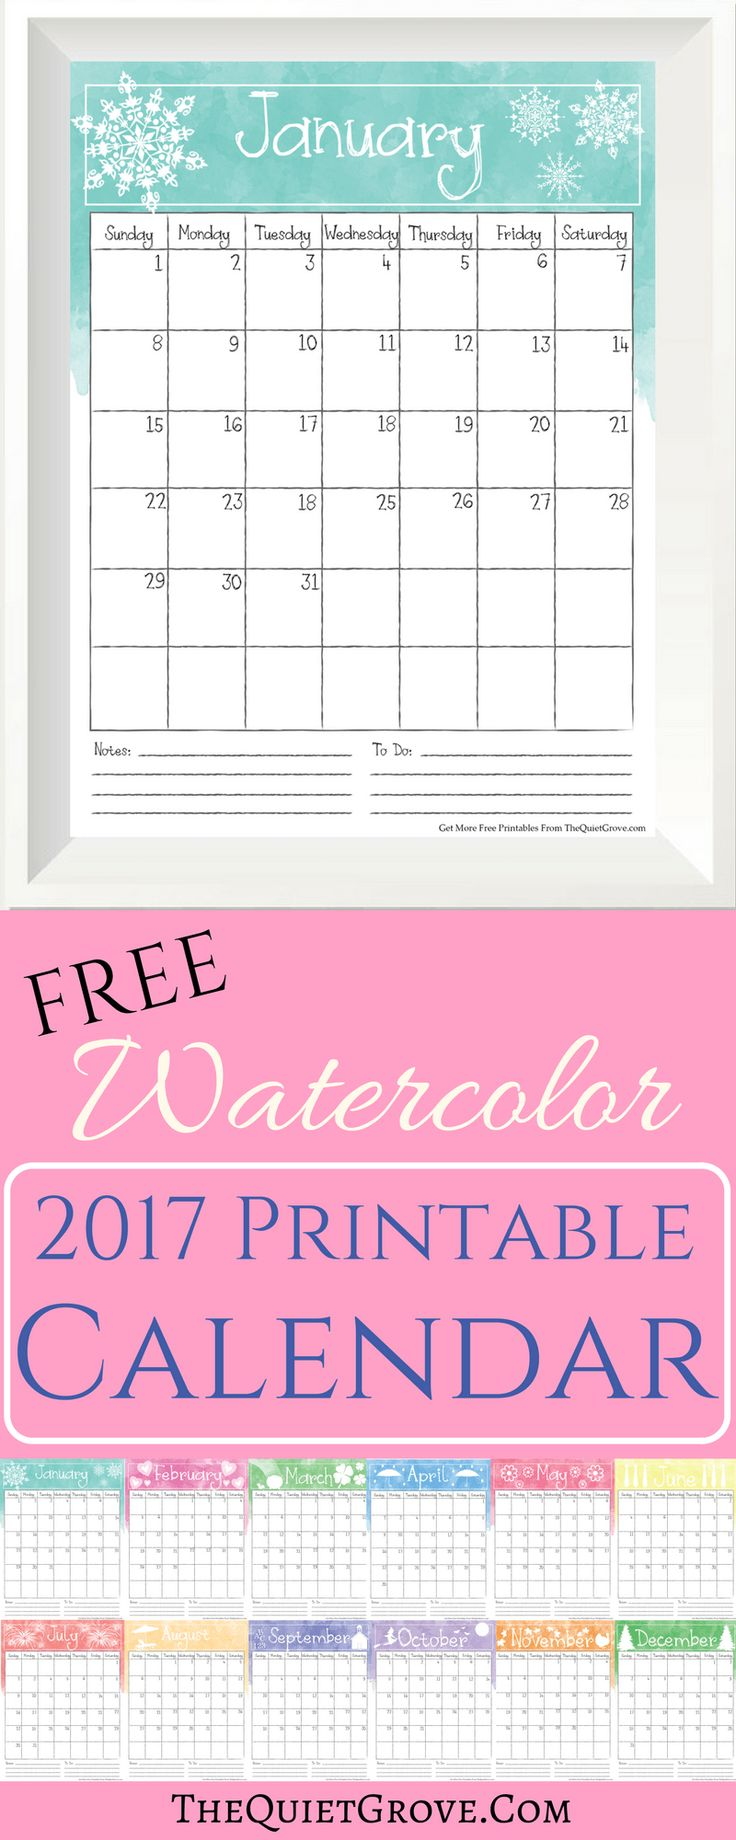 Blank Calendar Stamp : Best calendar ideas images on pinterest